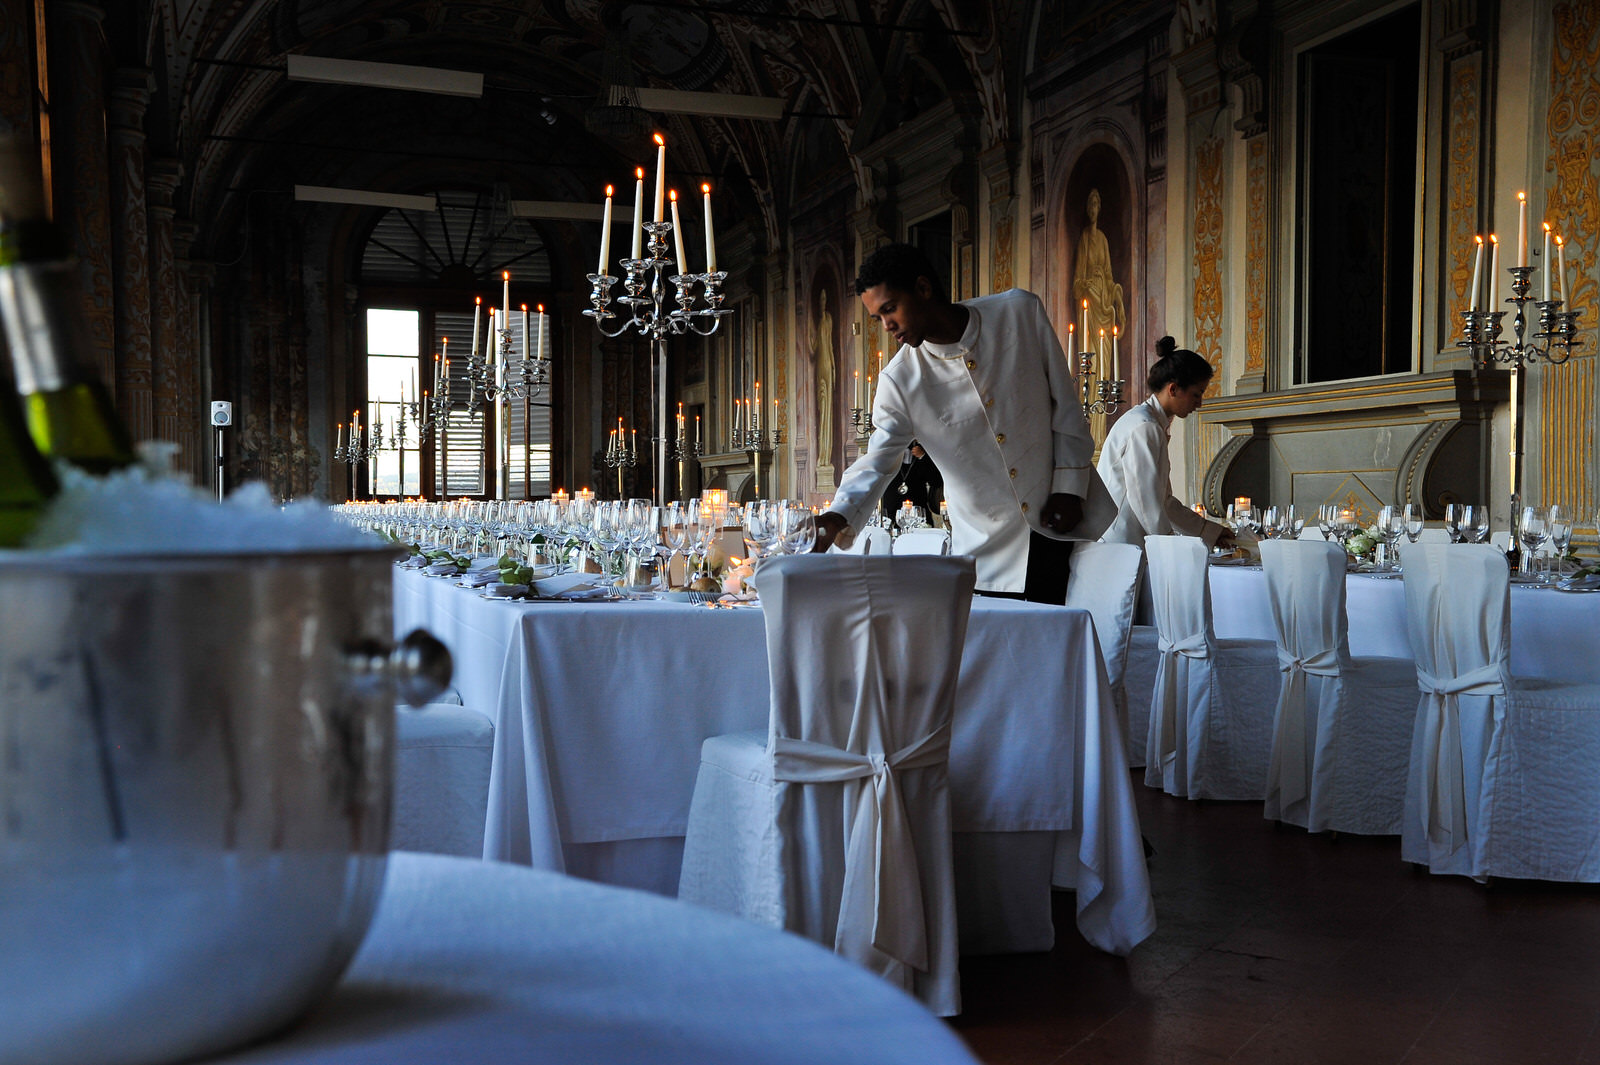 tuscany-wedding-planners-catering-05.jpg